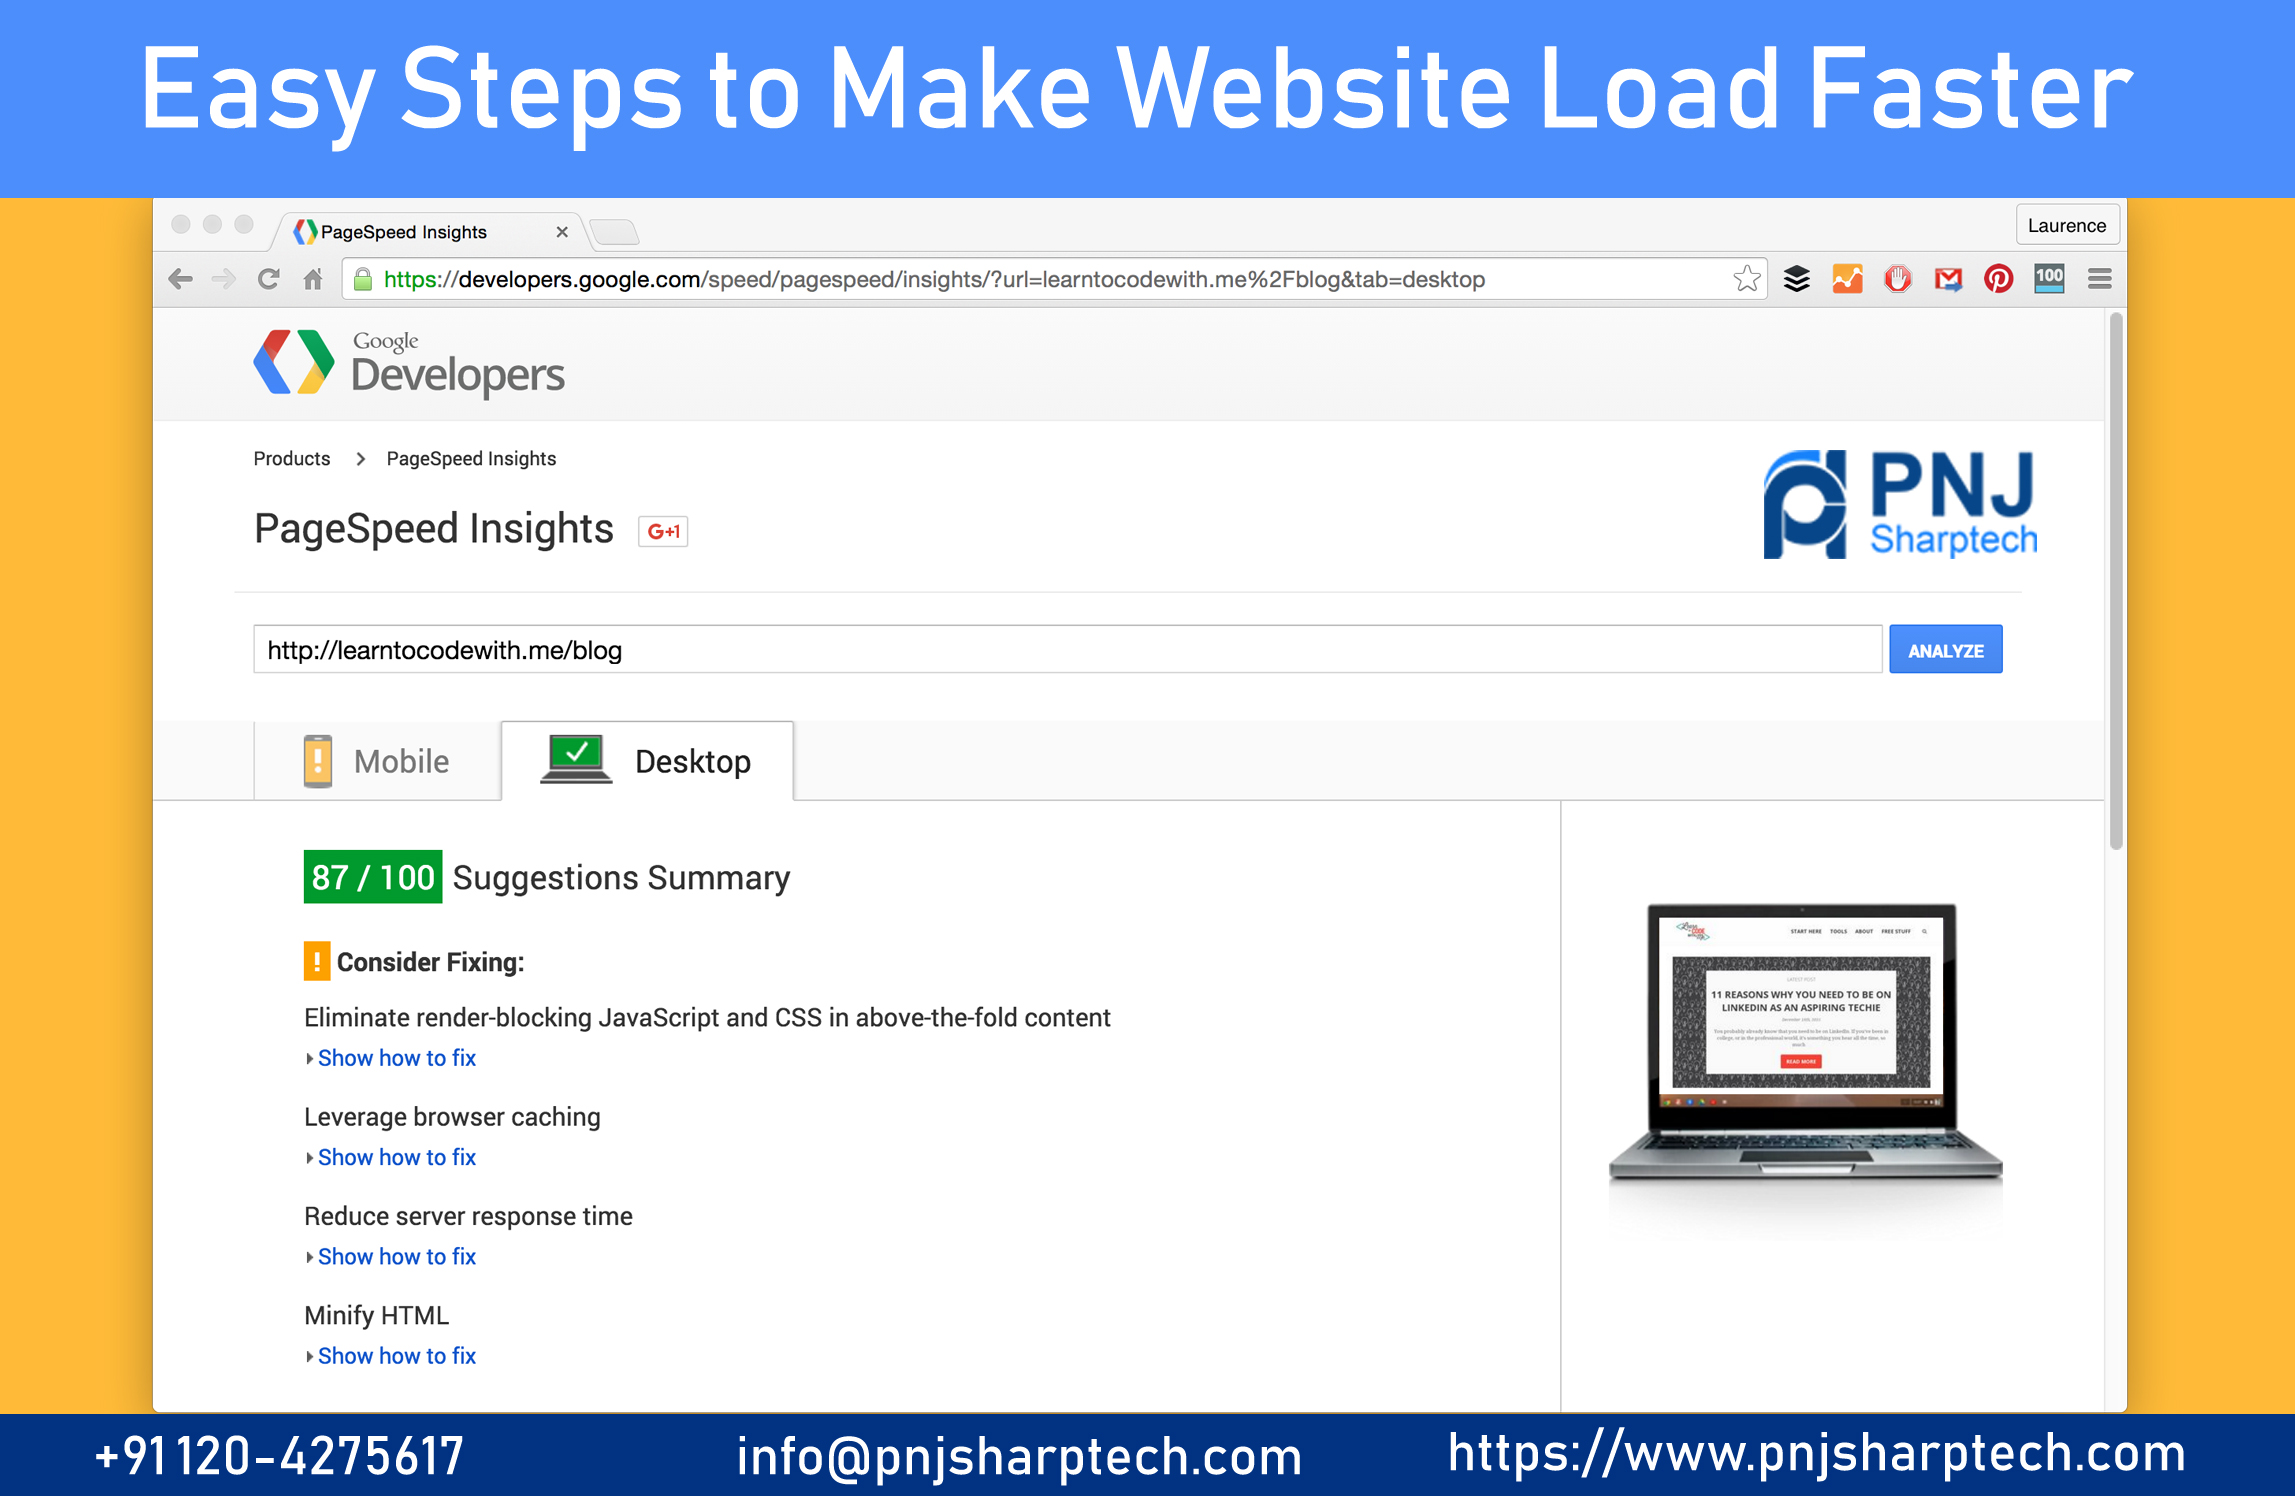 Make Website Load Faster